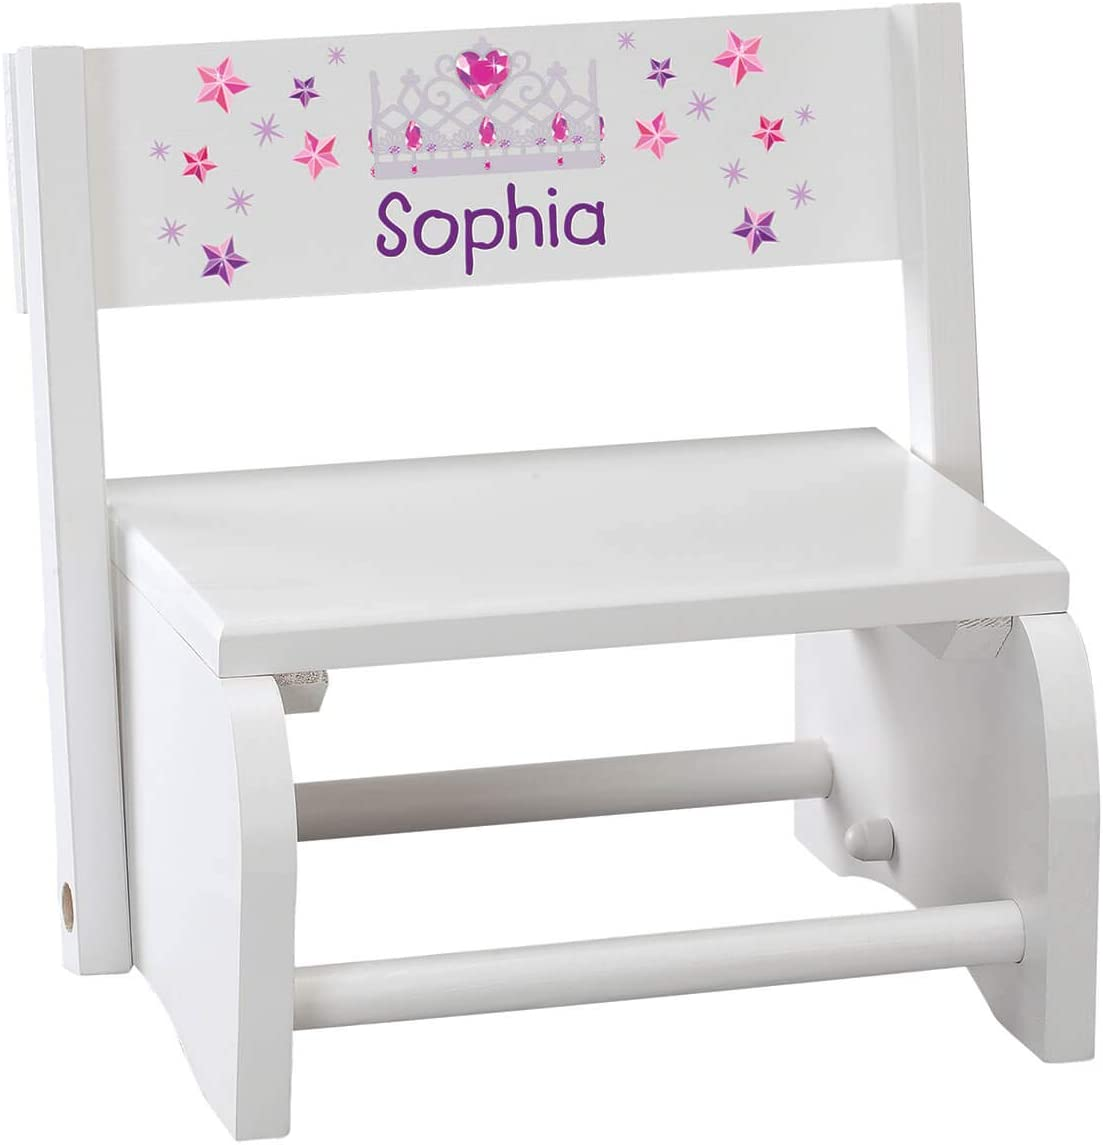 Fox Valley Traders Free sale shipping Personalized Children's Step Princess S White